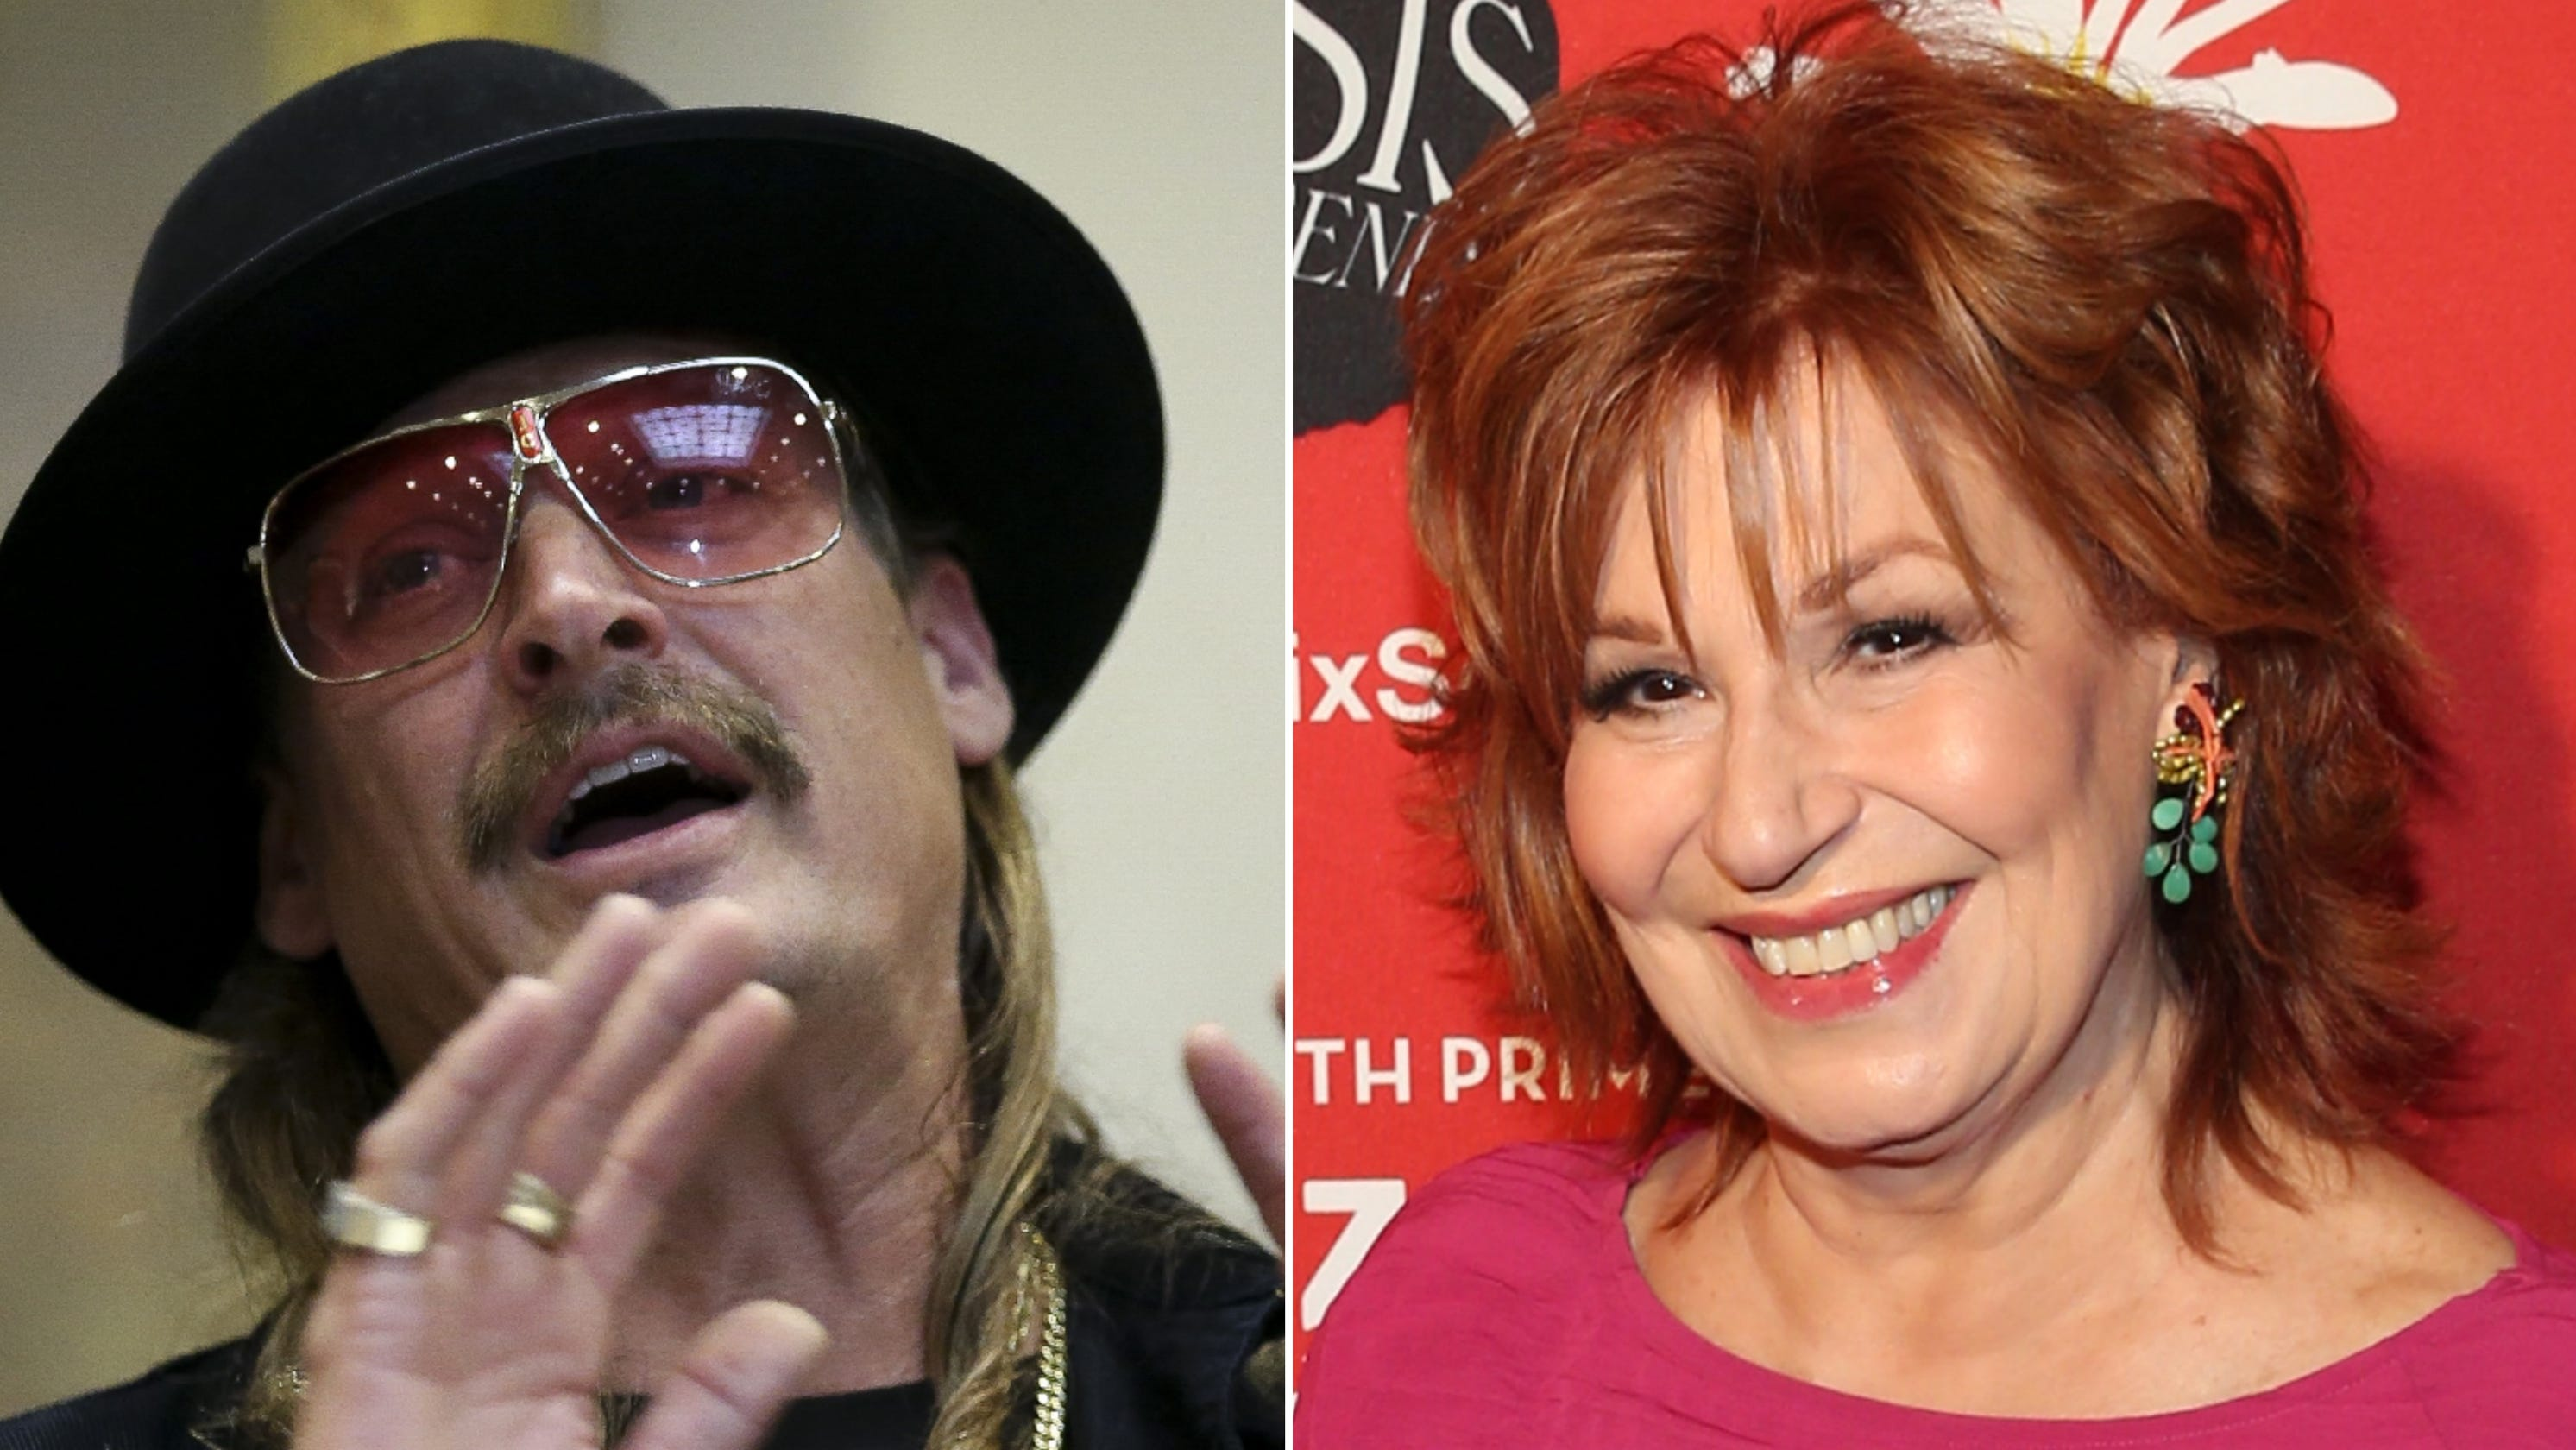 After Joy Behar insult, Kid Rock gets booted from Xmas parade